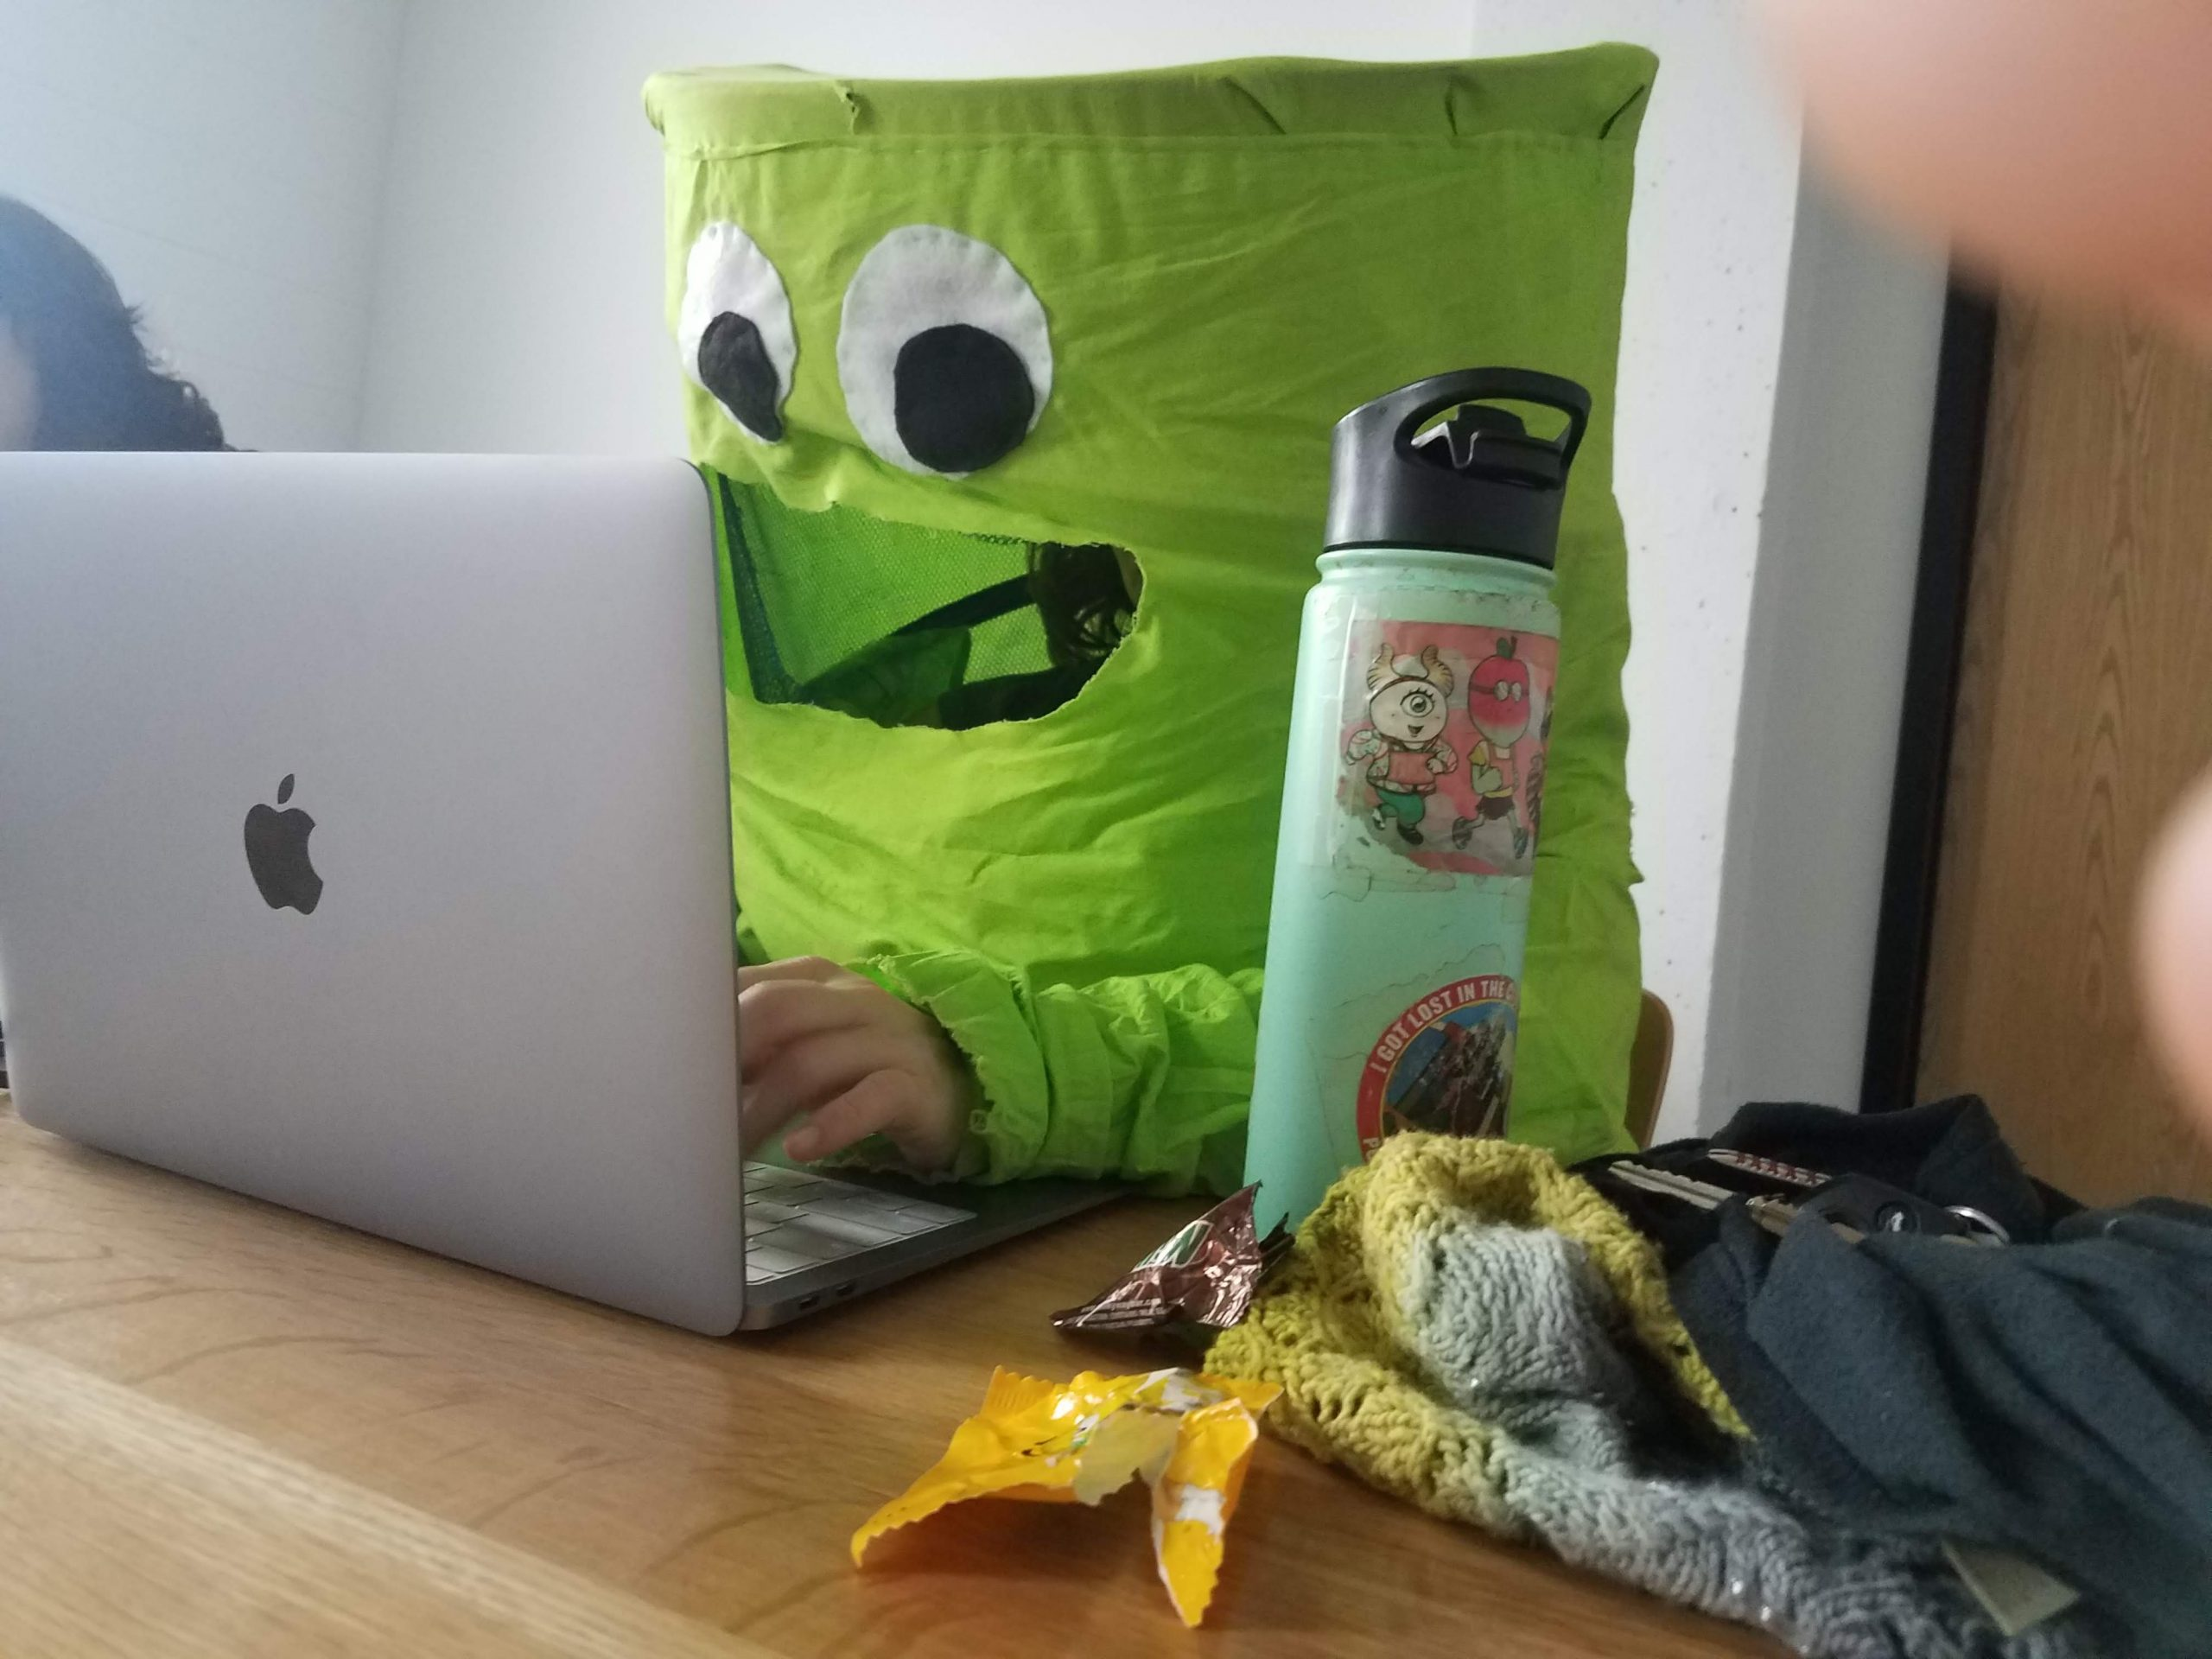 IT staff person wearing googly eye costume and working on laptop